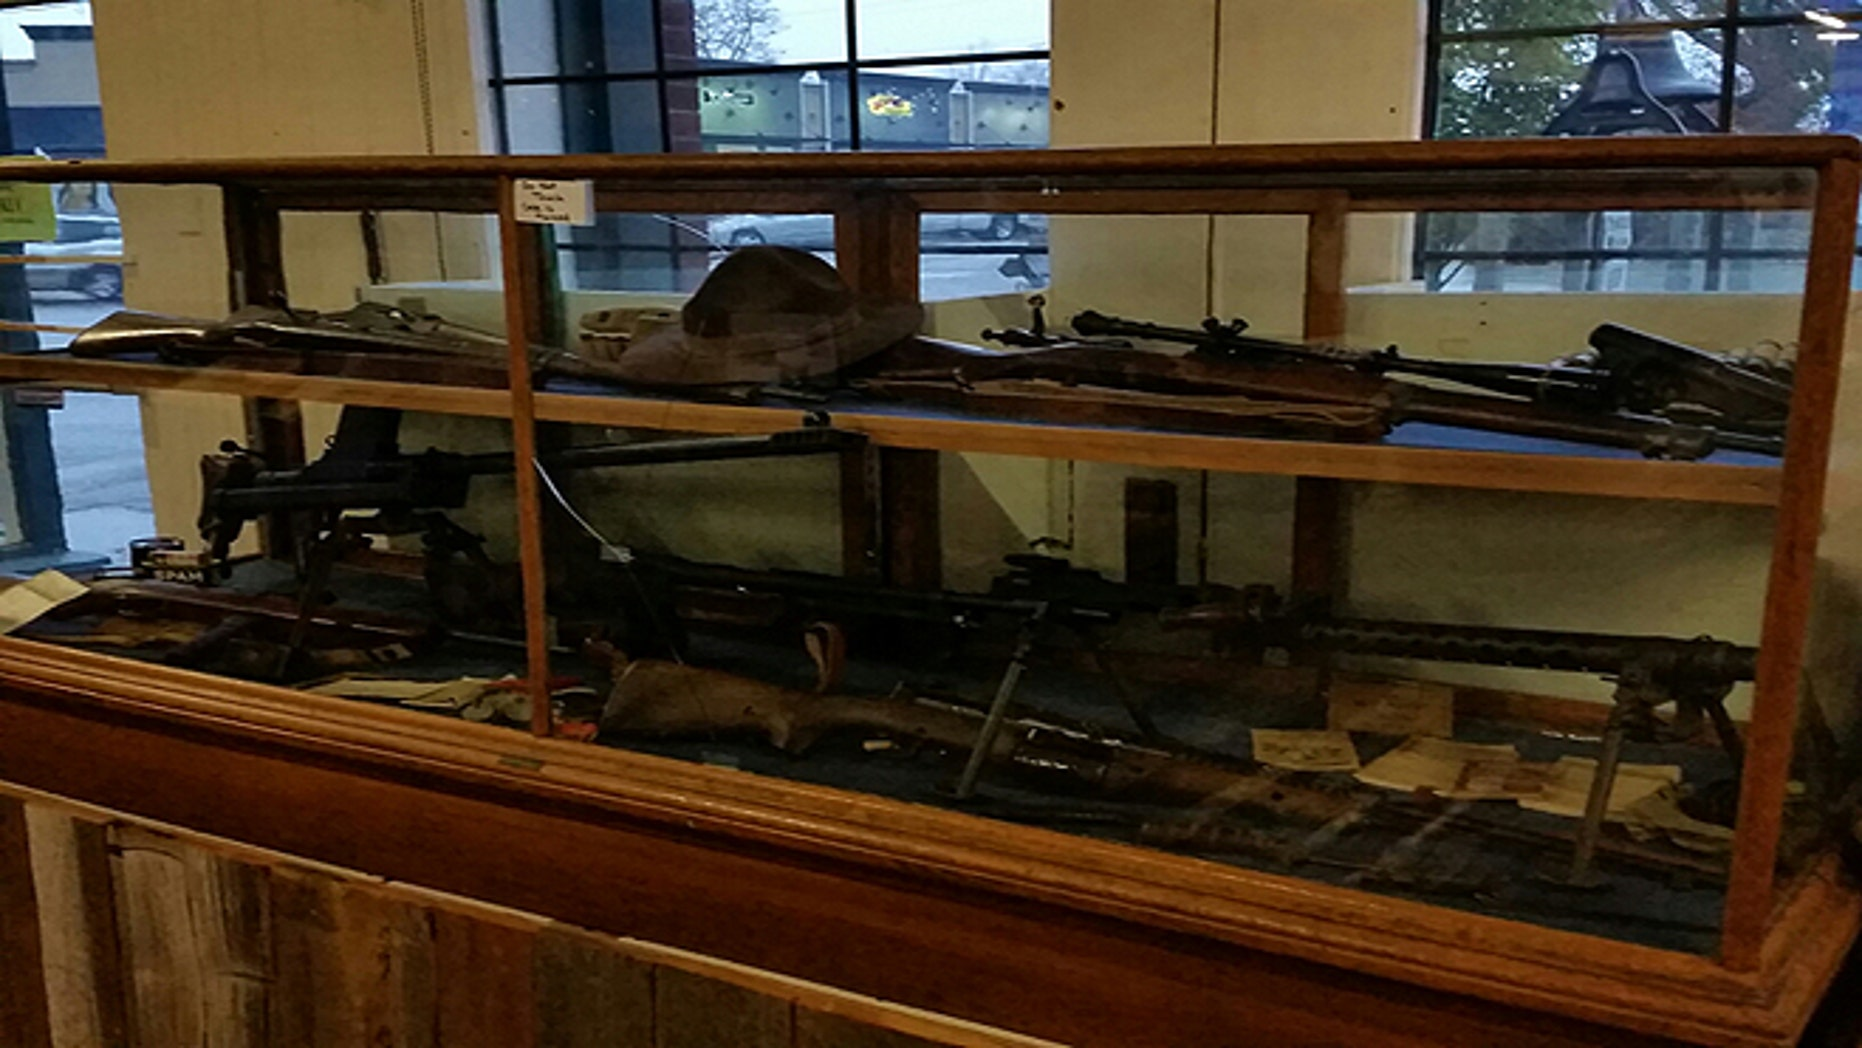 The Lynden Pioneer Museum, near the Canadian border in the northwest region of Washington state, nearly removed 11 weapons on display as part of a WWII exhibit because of new gun legislation.